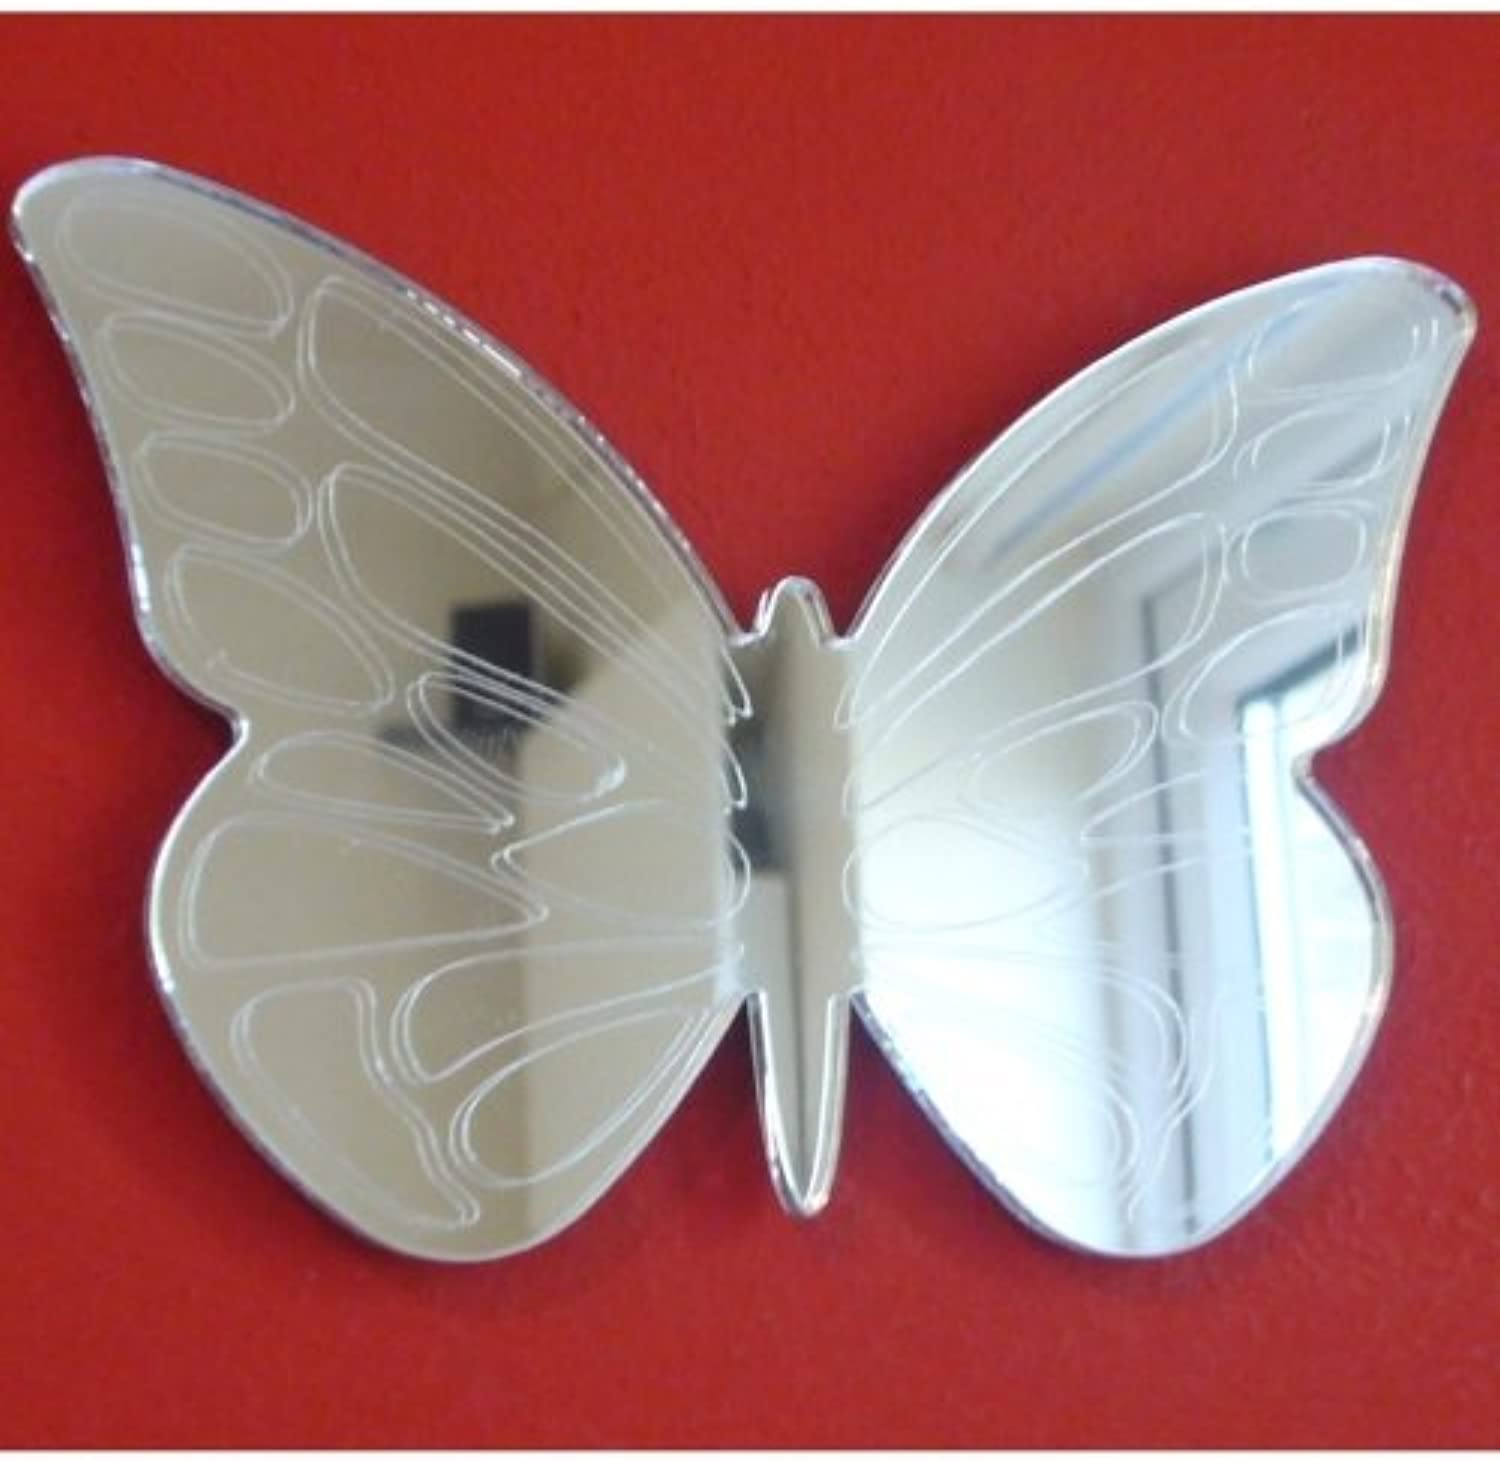 Butterfly Mirrors Etched - 60cm x 41cm